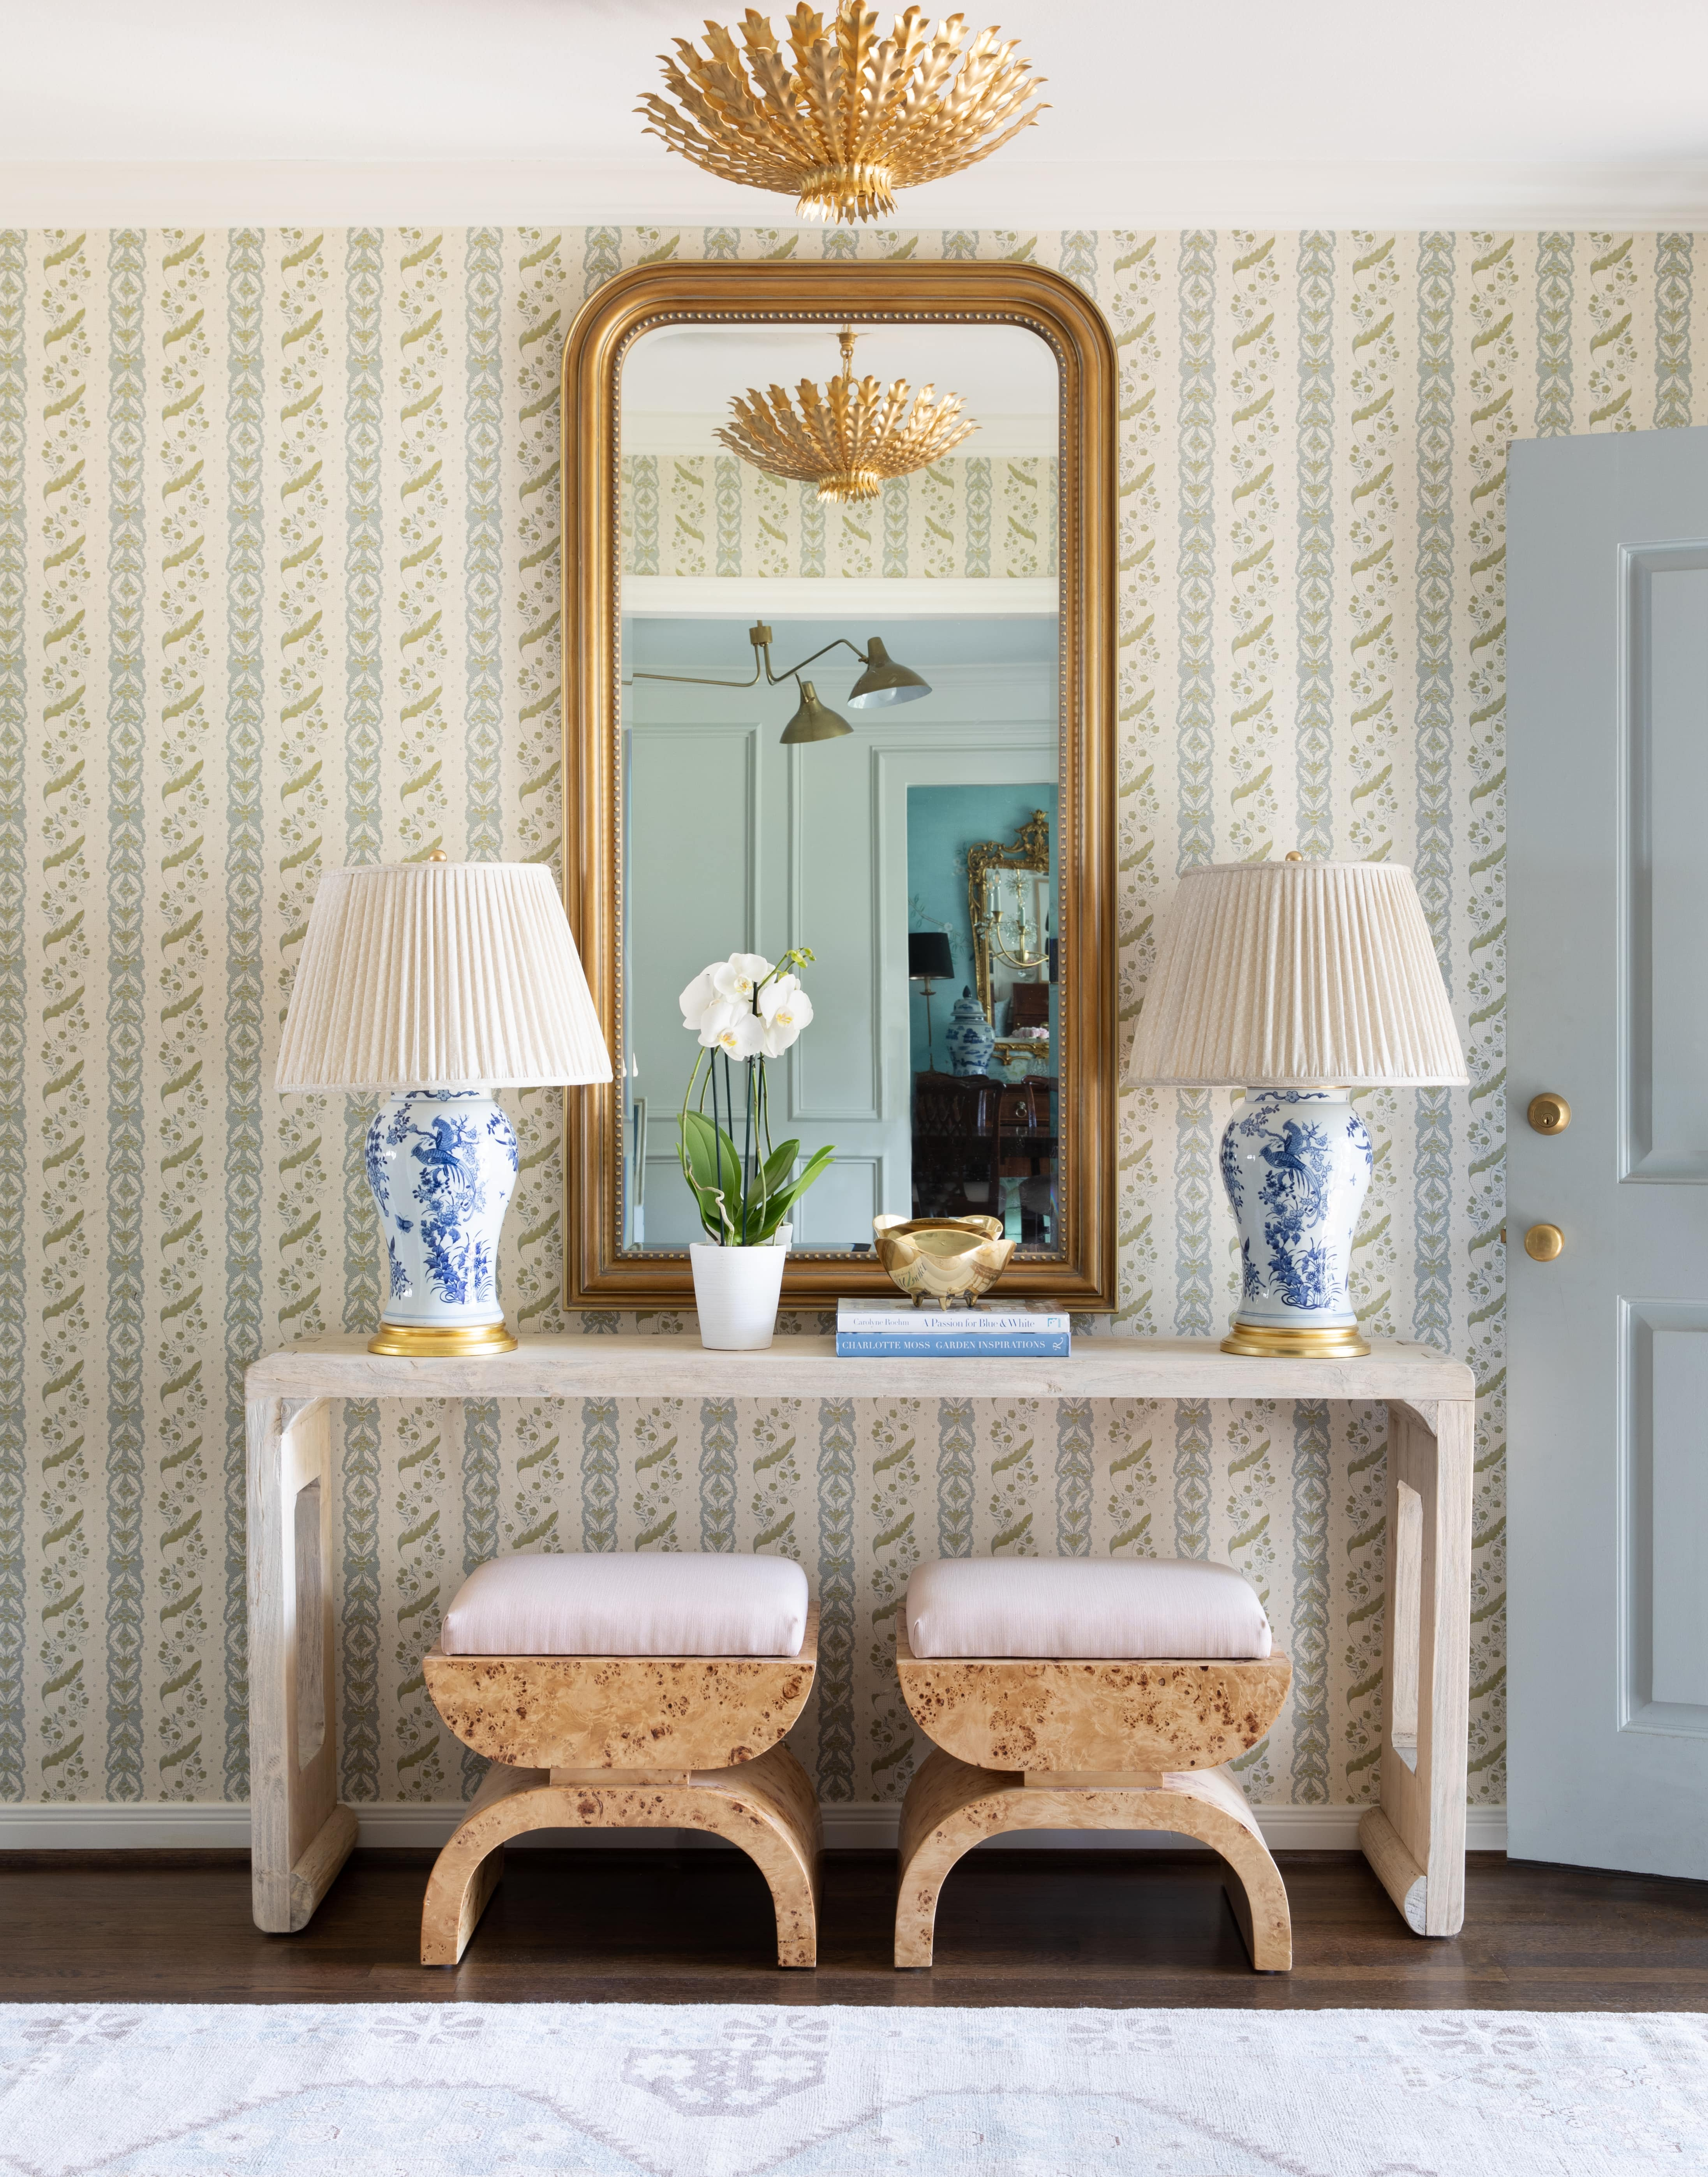 Blythe Medium Table Lamp by Ralph Lauren, Hampton Small Chandelier by AERIN, Charlton Large Triple Arm Chandelier by AERIN